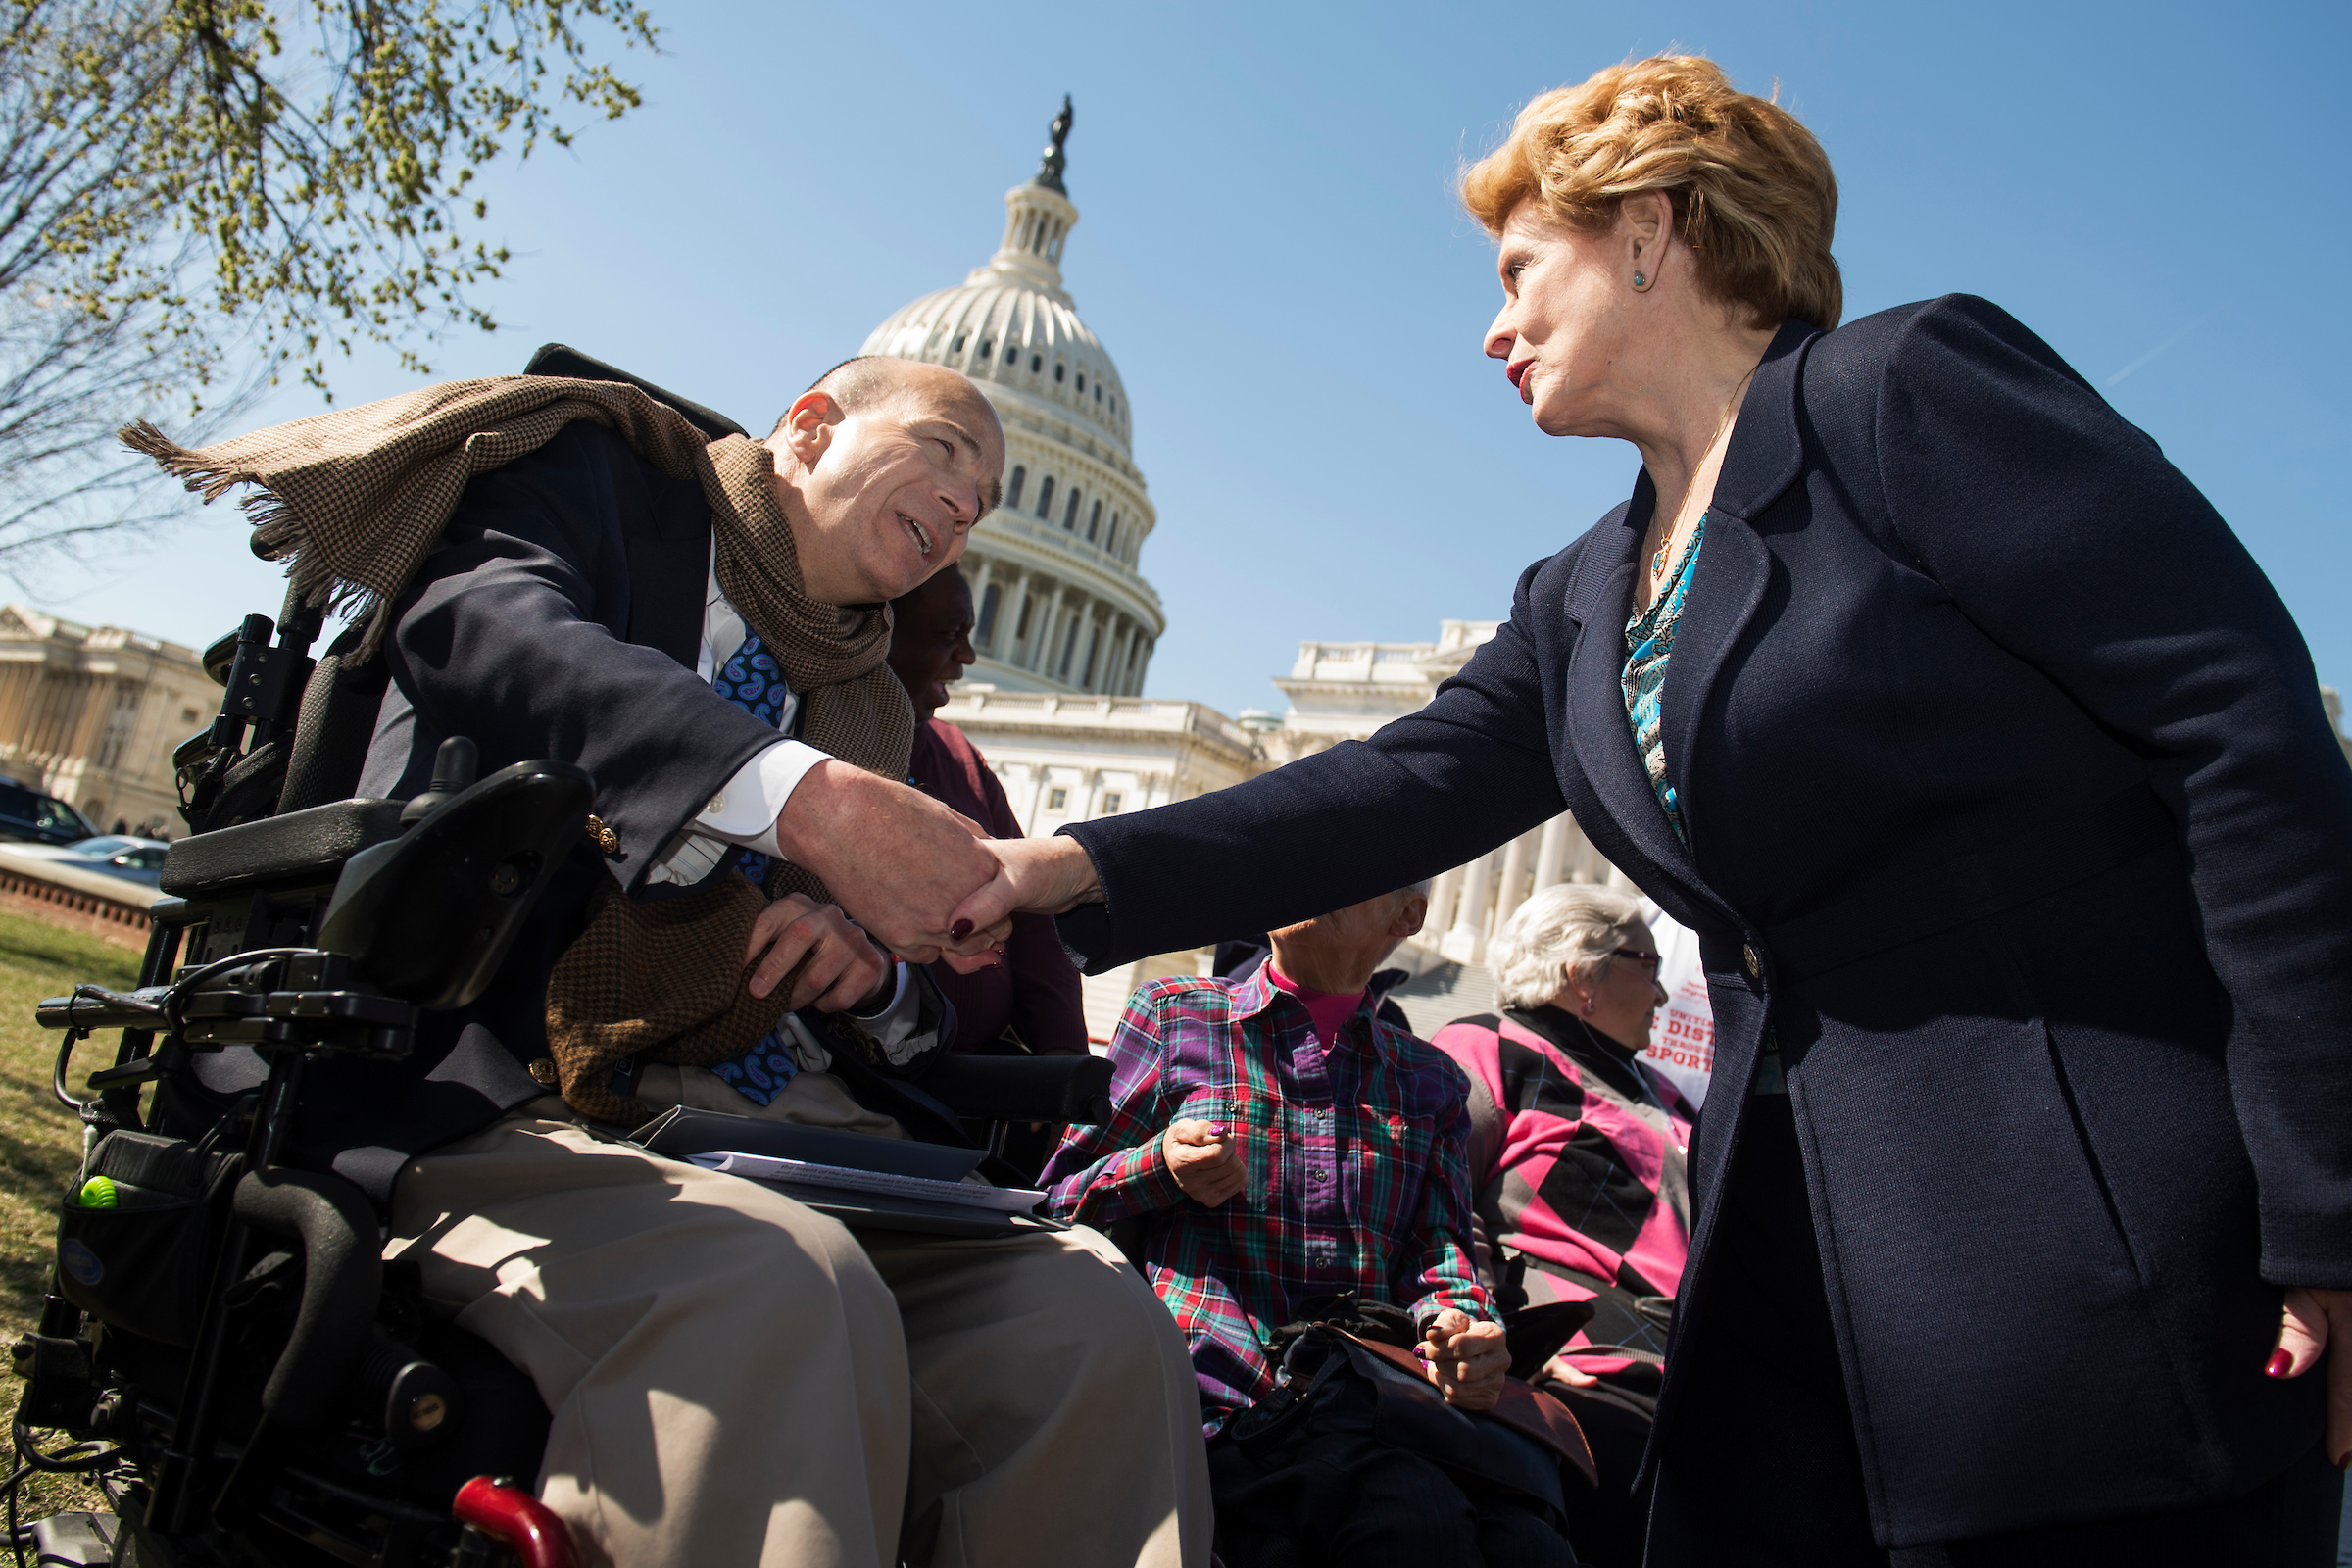 Sen. Debbie Stabenow, D-Mich., greets Kent Keyser of the United Spinal Association, during a news conference to defend the Affordable Care Act on Thursday. (Tom Williams/CQ Roll Call)